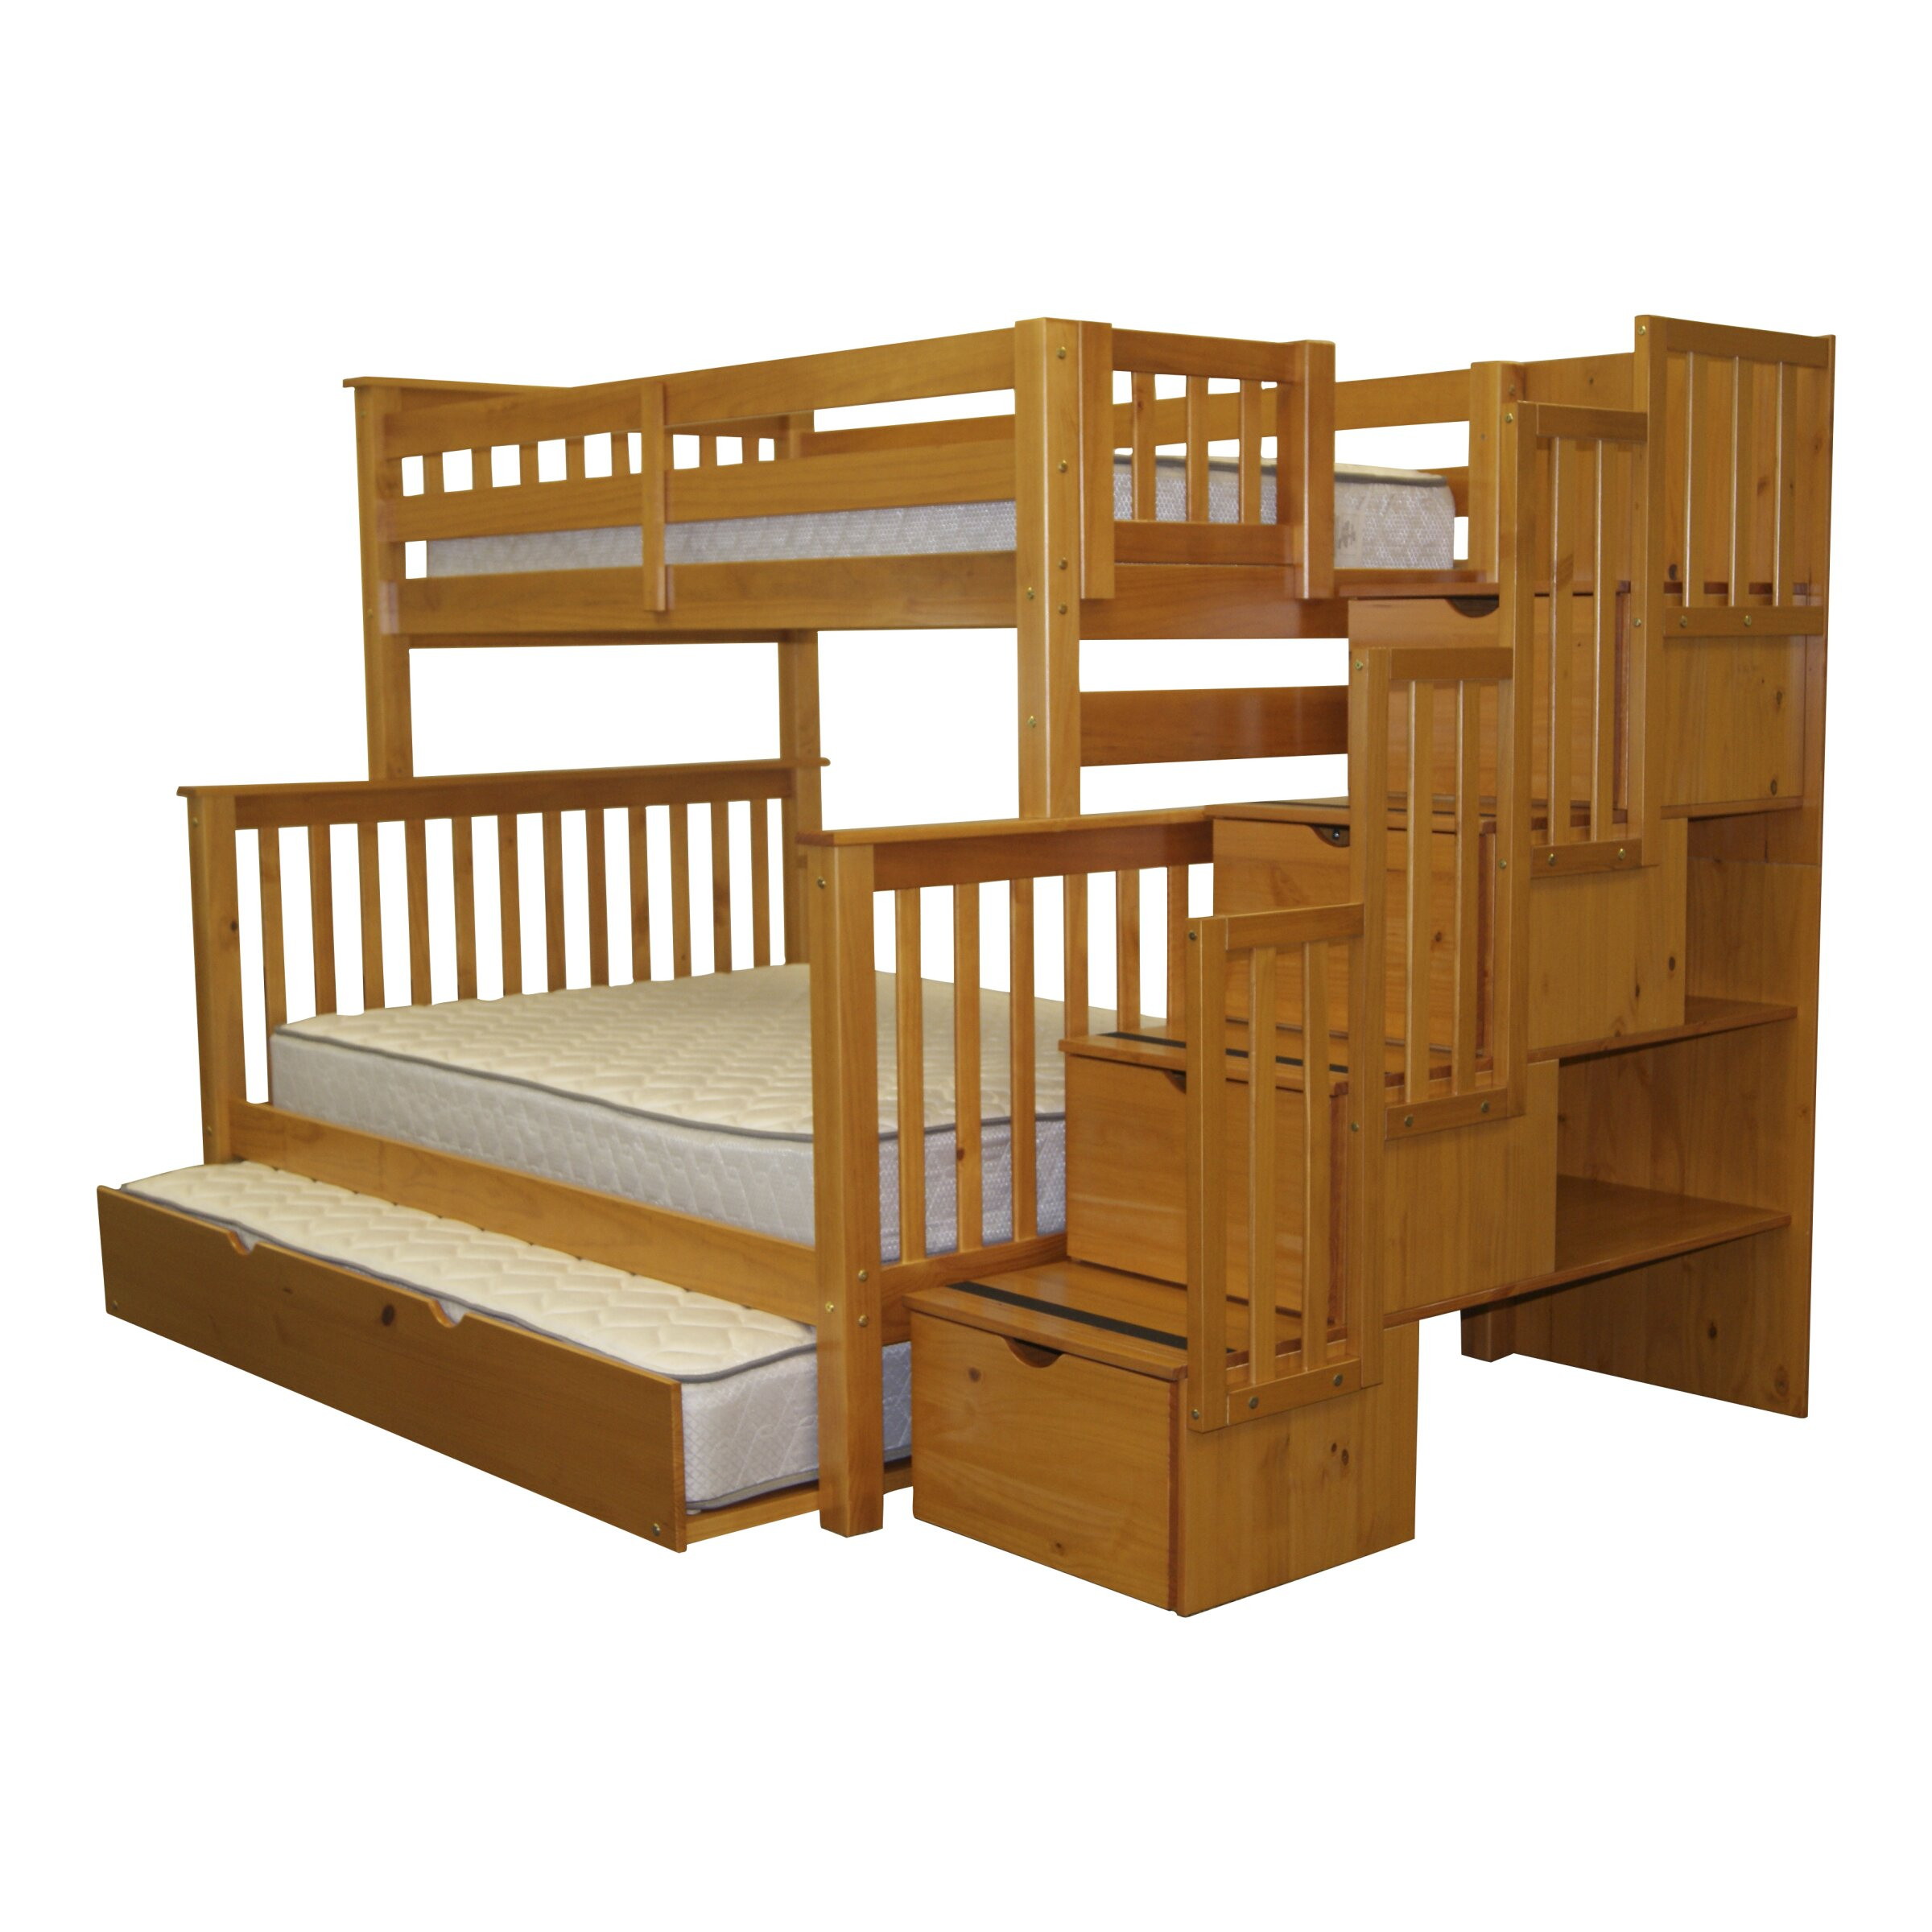 Bedz King Twin over Full Bunk Bed with Storage & Reviews